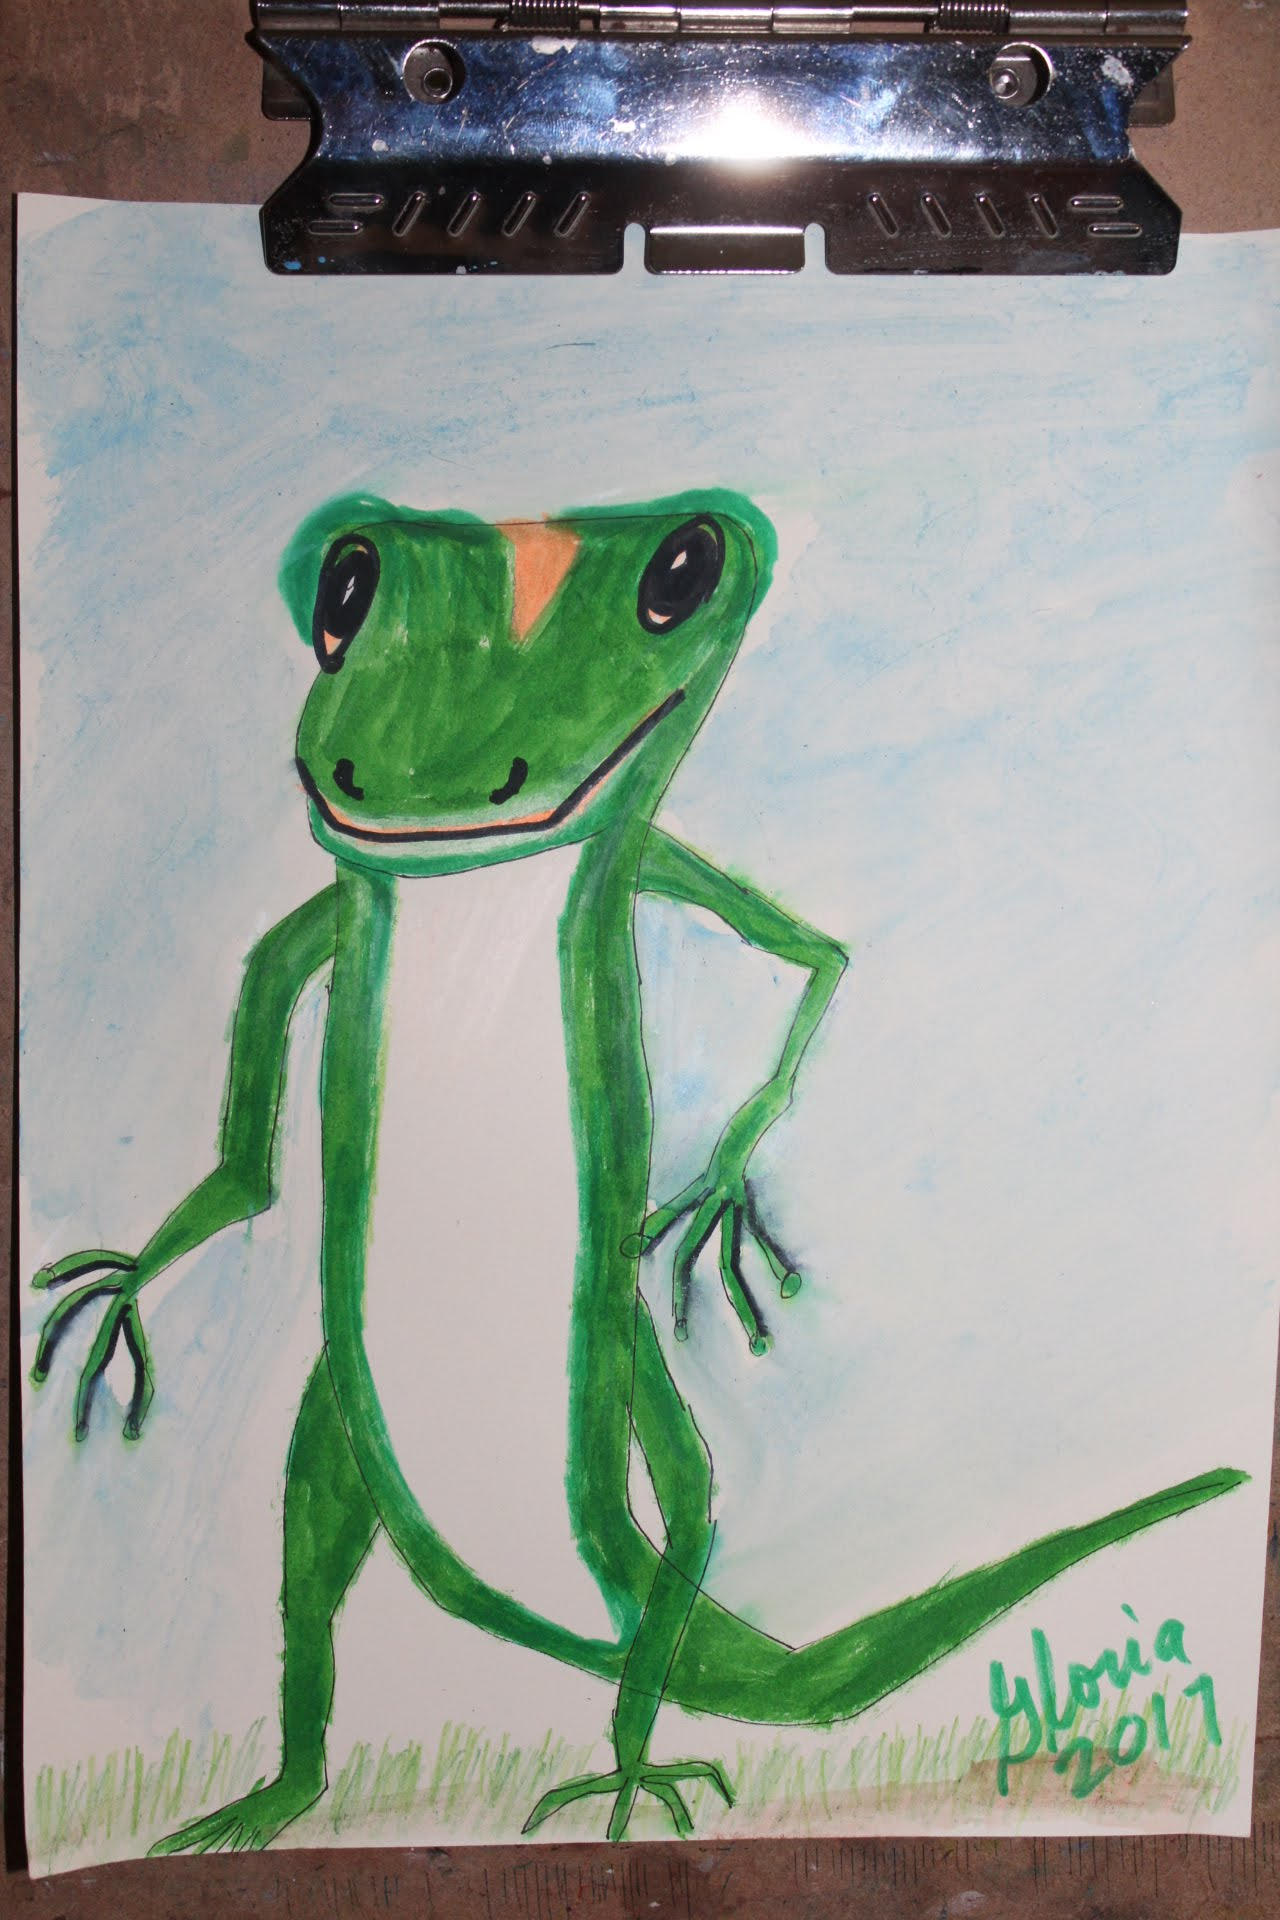 Upright tree frog lizard drawn on 10th August 2017  by Gloria Poole / gloriapoole Registered Nurse, artist, of/in Missouri